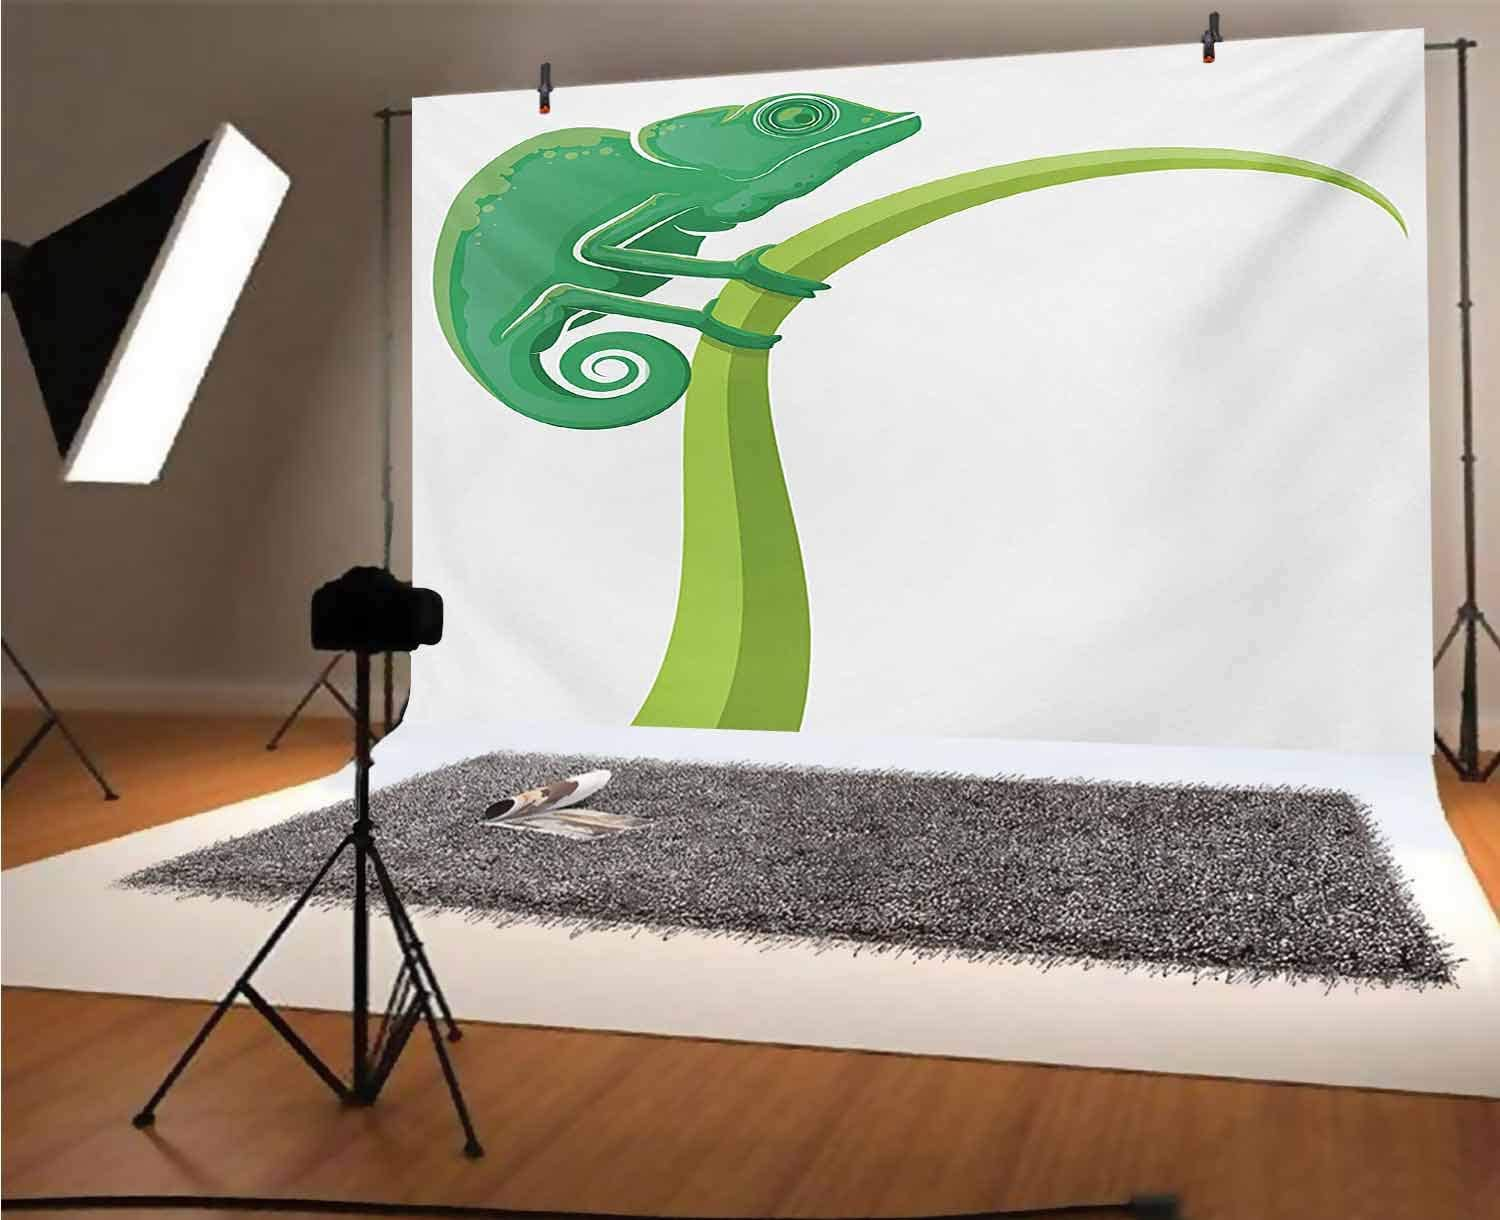 Reptile 12x10 FT Vinyl Photo Backdrops,Exotic Grumpy Lizard Holding onto Grass with Curled Tail Jungle Cartoon Camouflage Background for Child Baby Shower Photo Studio Prop Photobooth Photoshoot